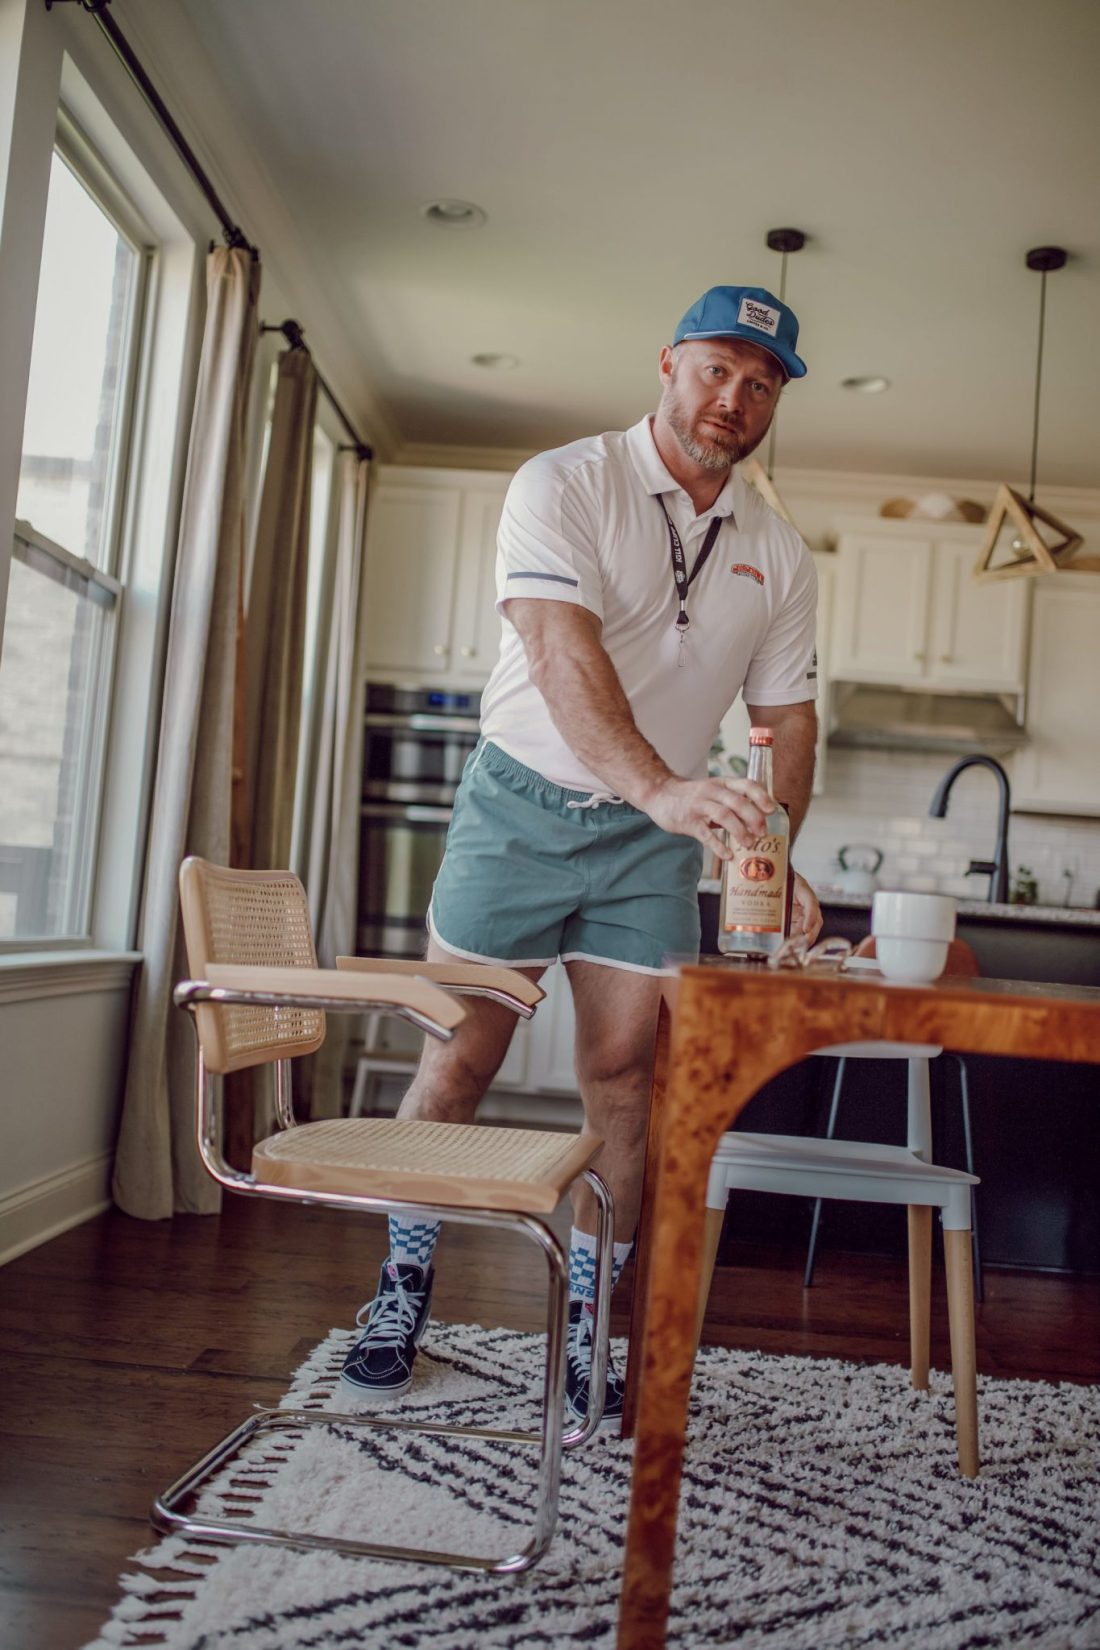 Homeschooling Journey by popular Nashville lifestyle blog, Modern Day Moguls: image of a man dressed up as a gym teacher and placing bottle of liquor on the table.